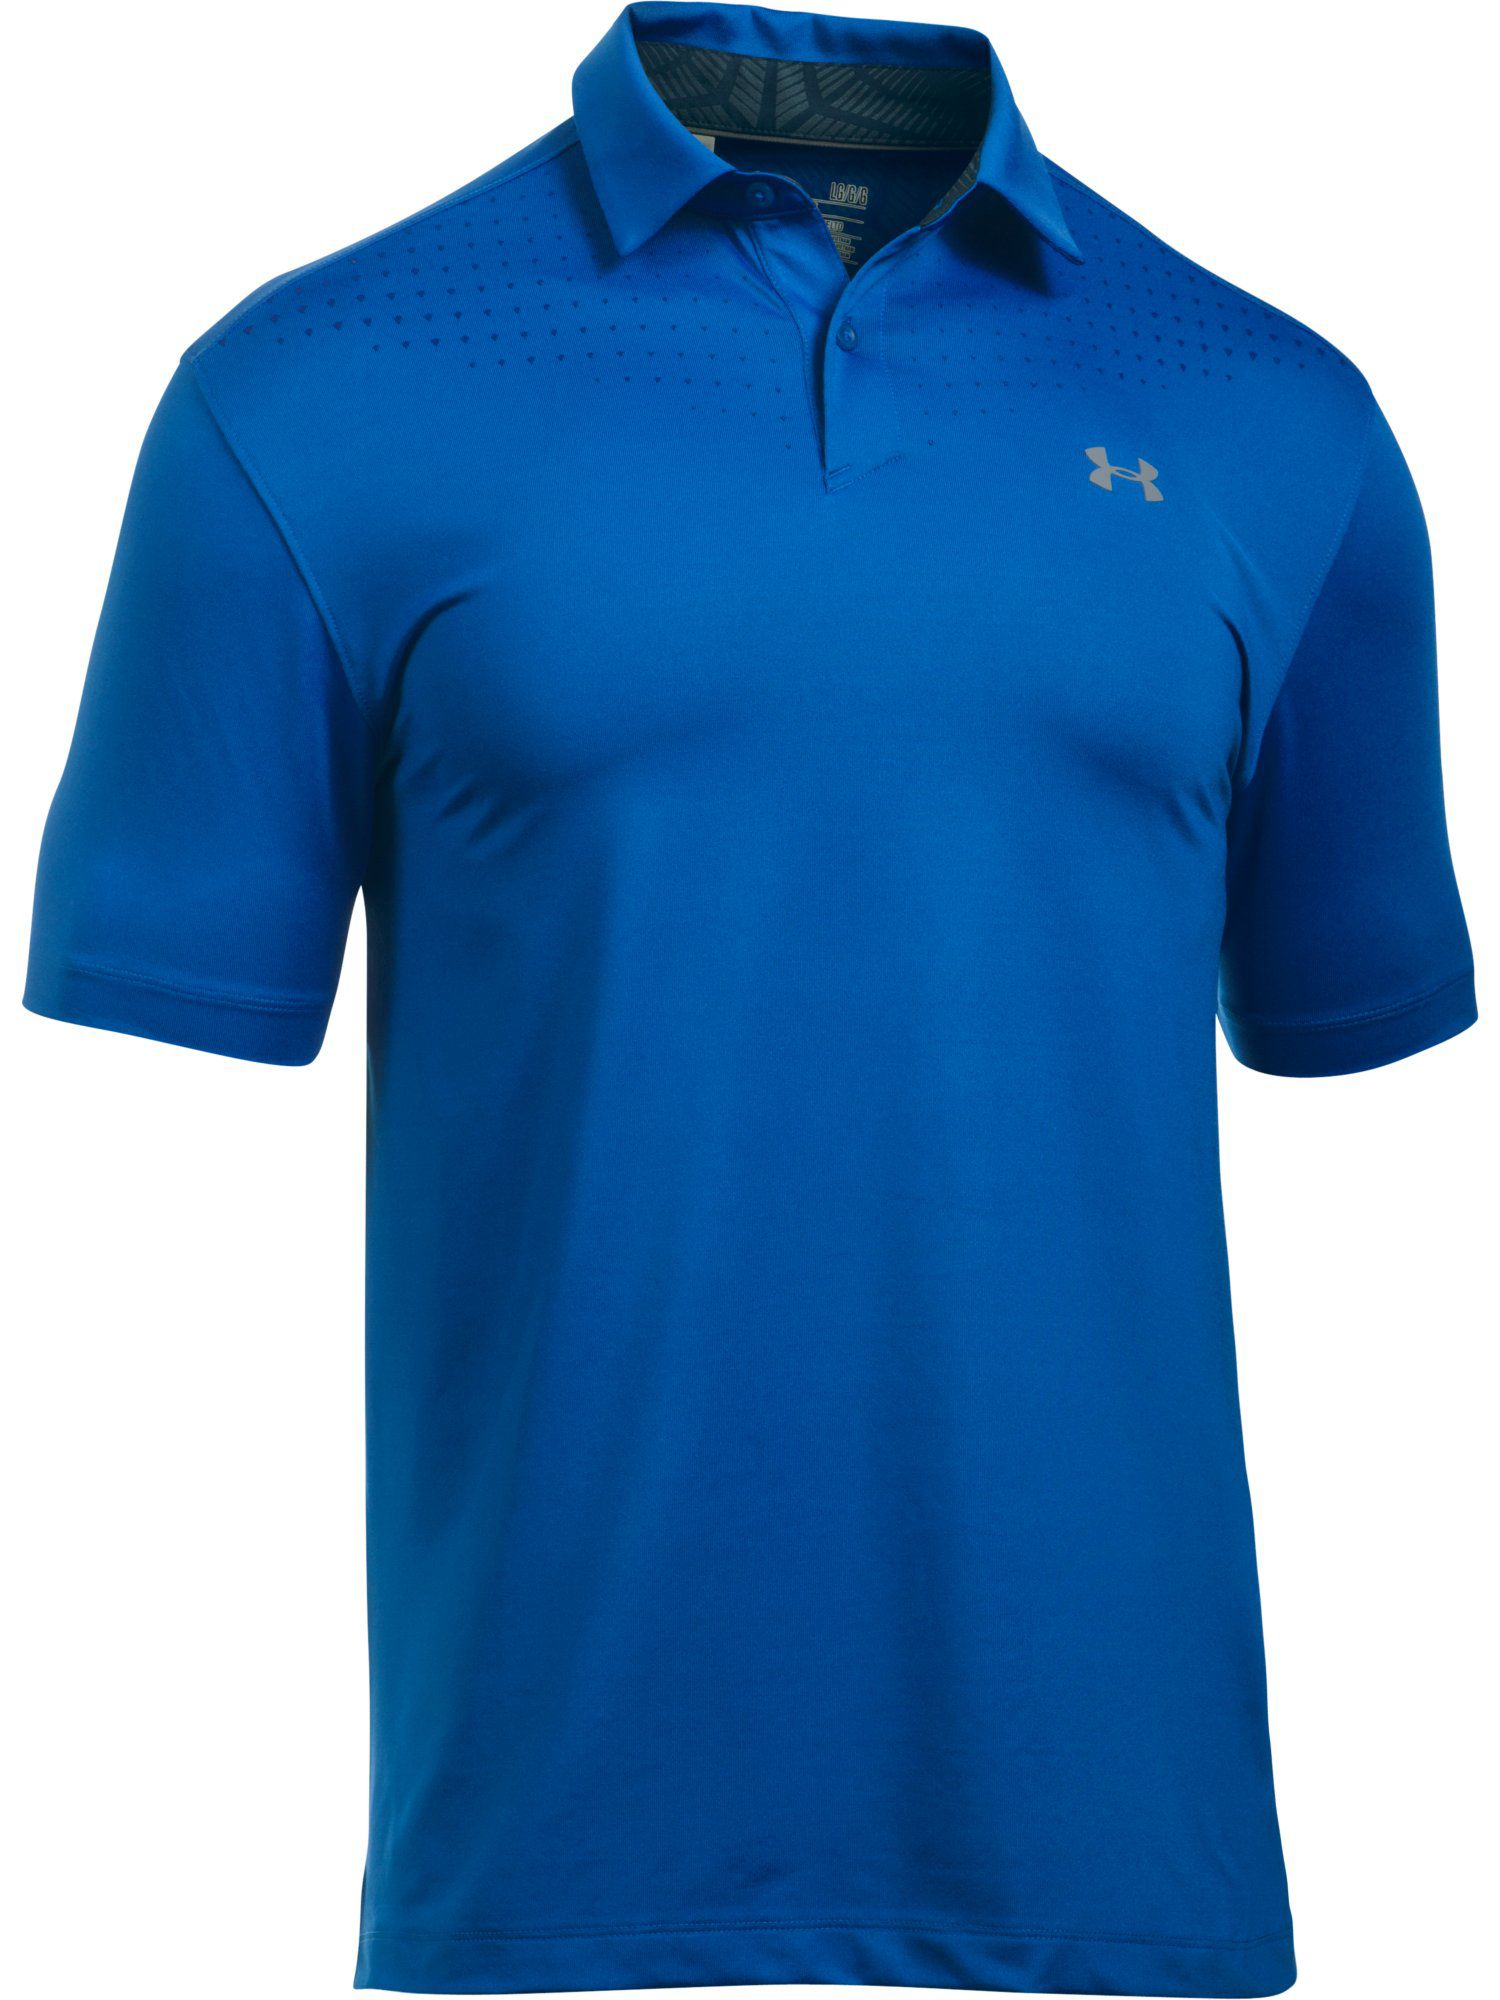 Men's Under Armour Coolswitch Ice Pick Polo, Blue